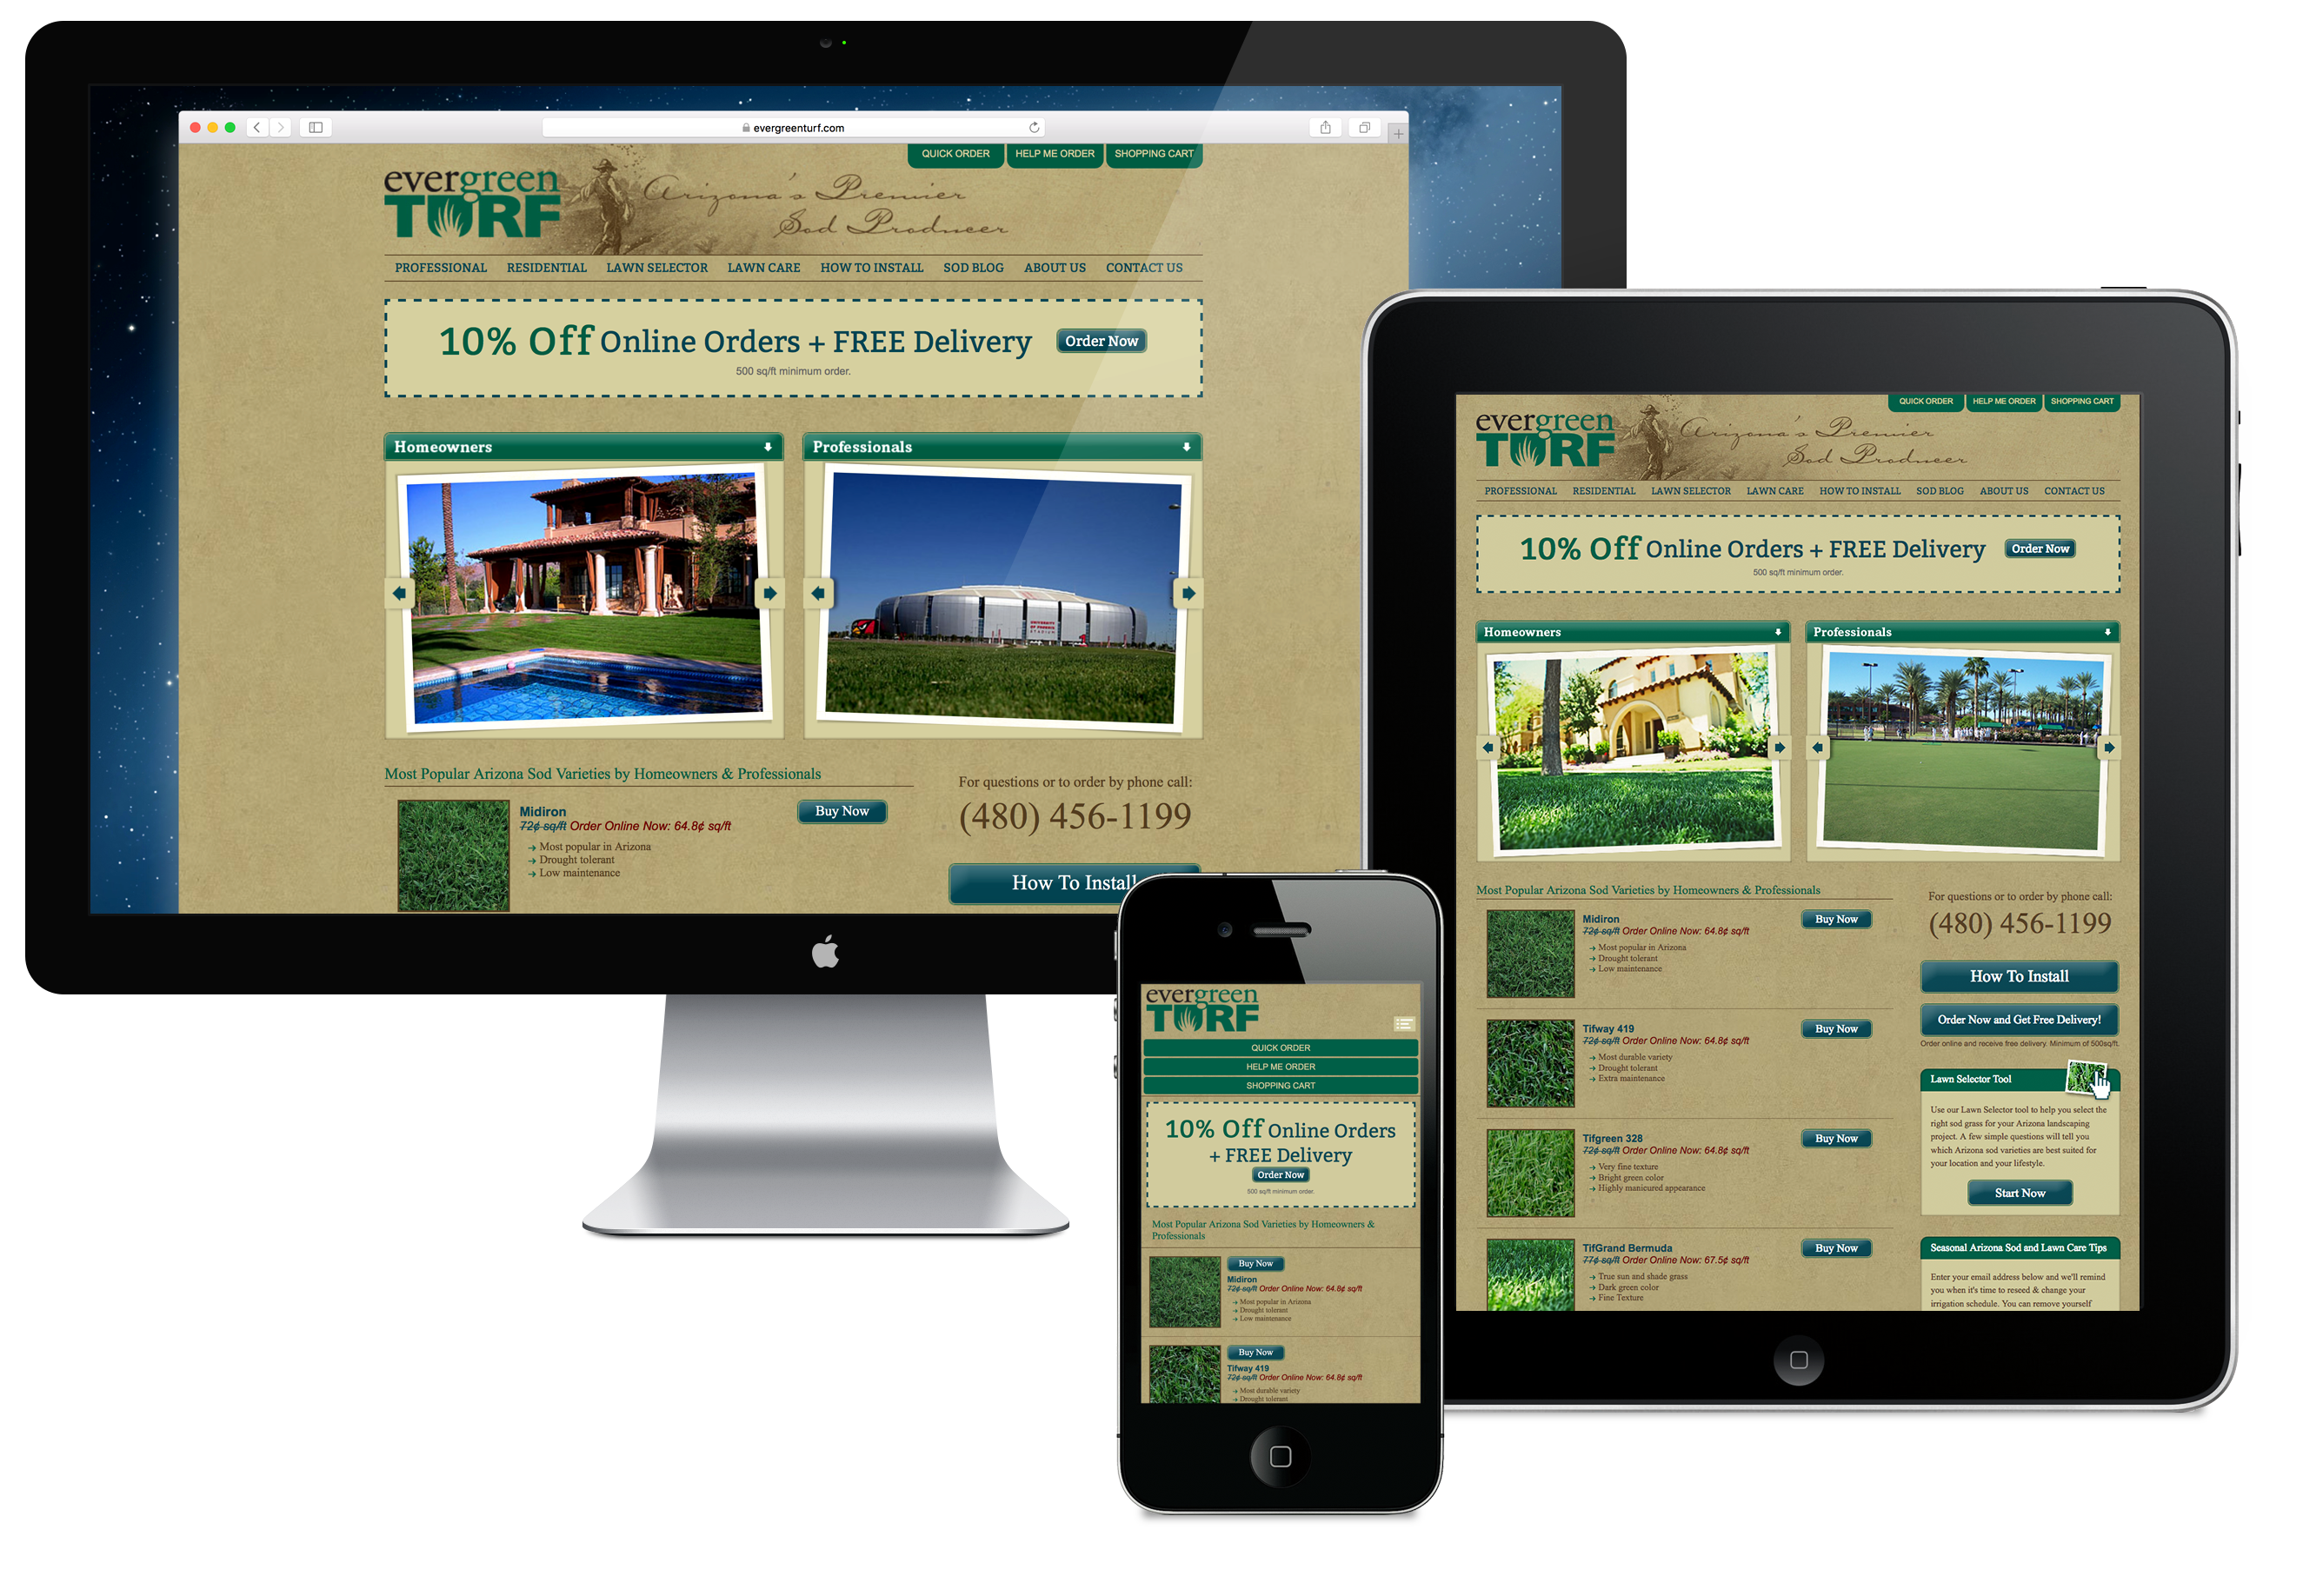 Evergreen Turf Website Design